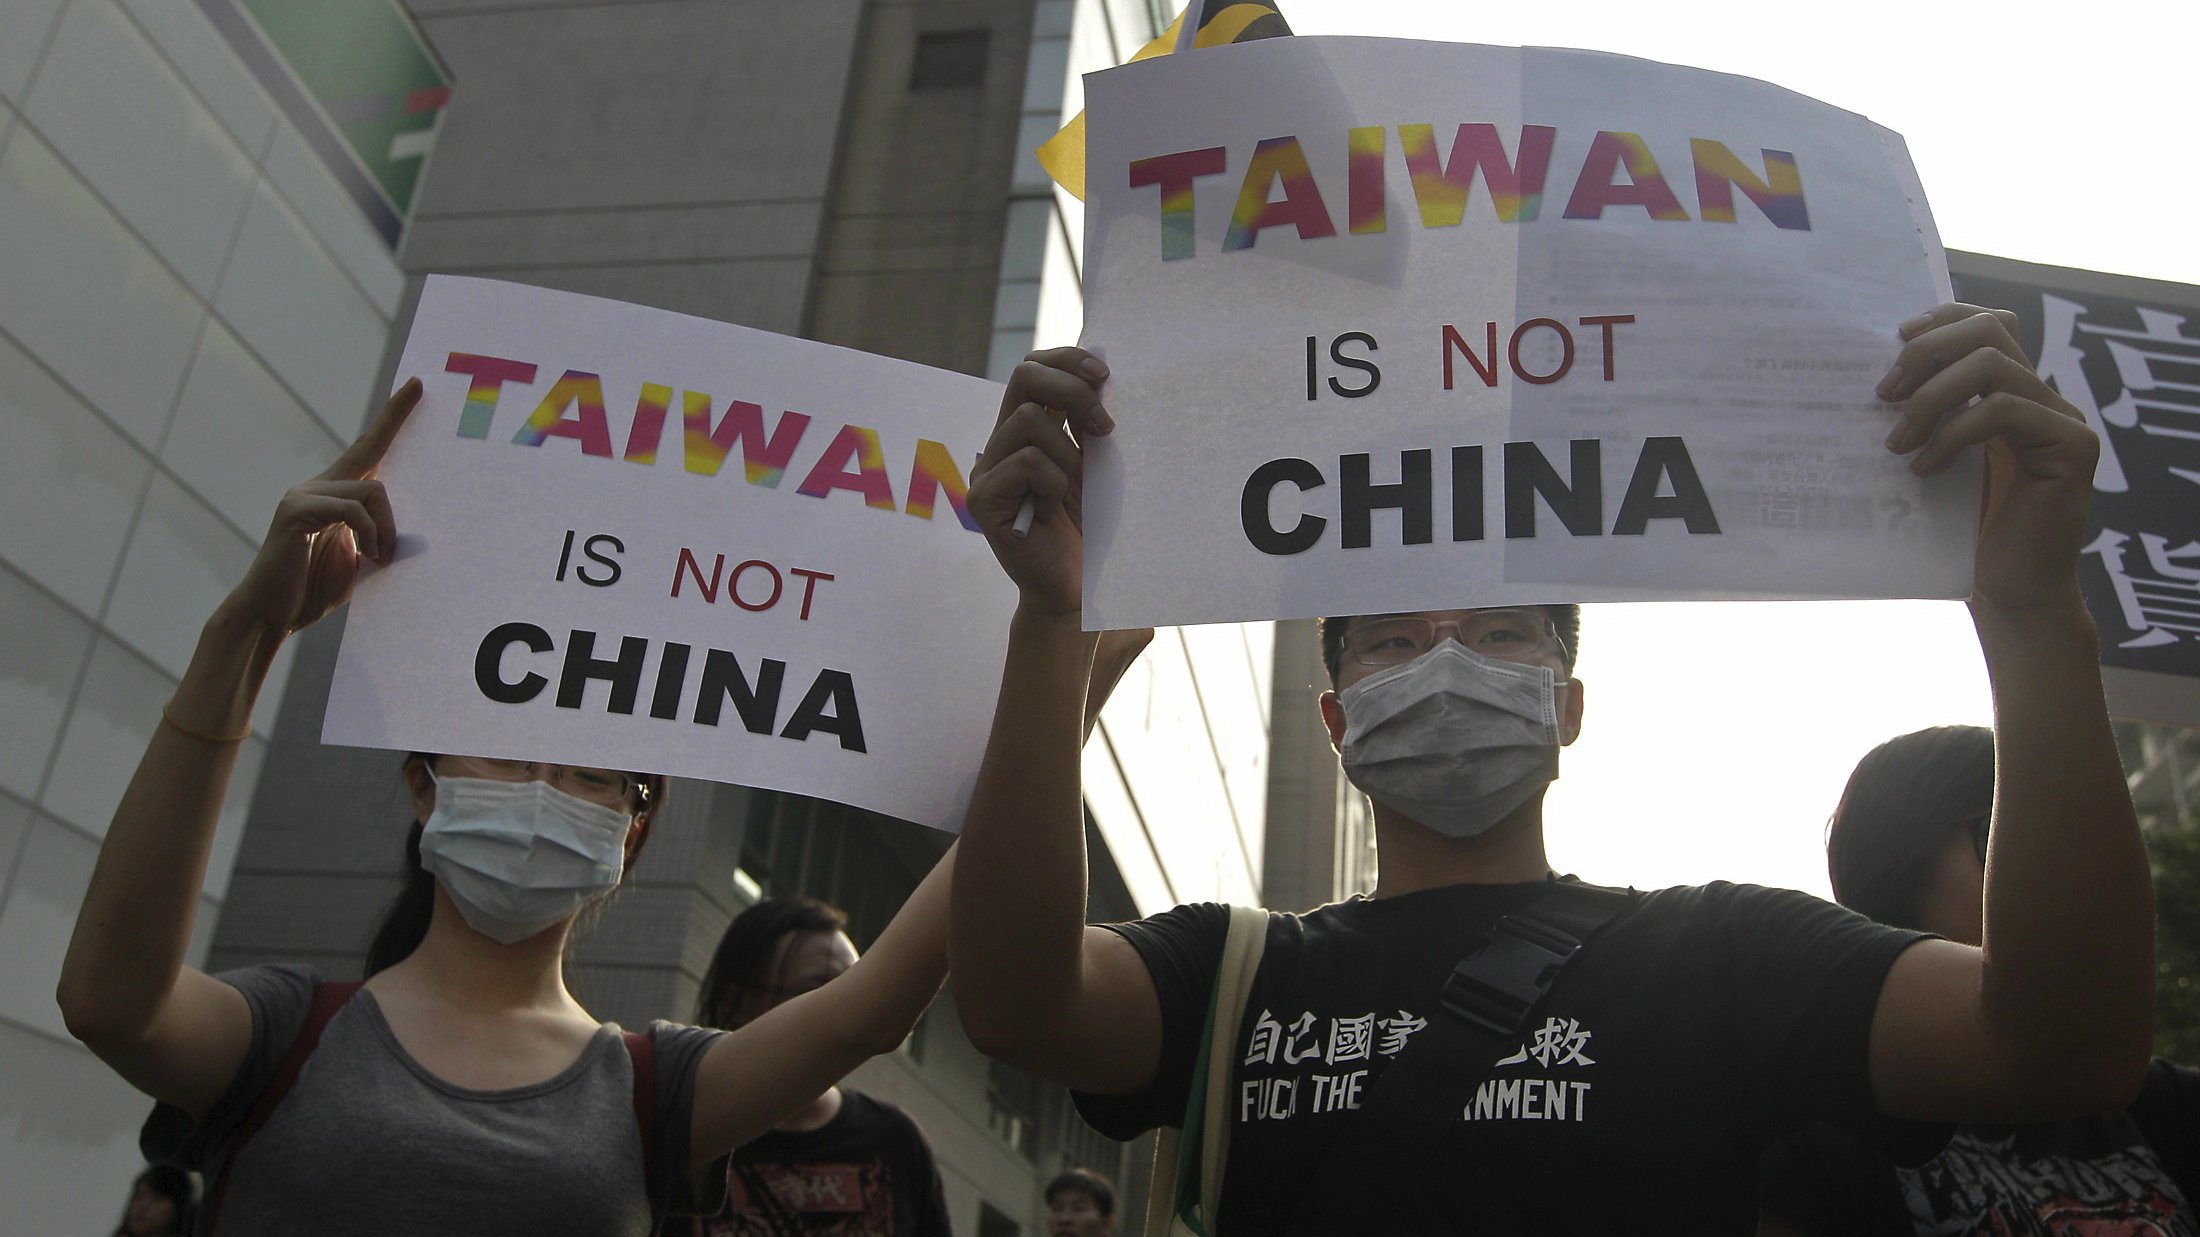 Pro-Tawian protesters hold signs in Singapore